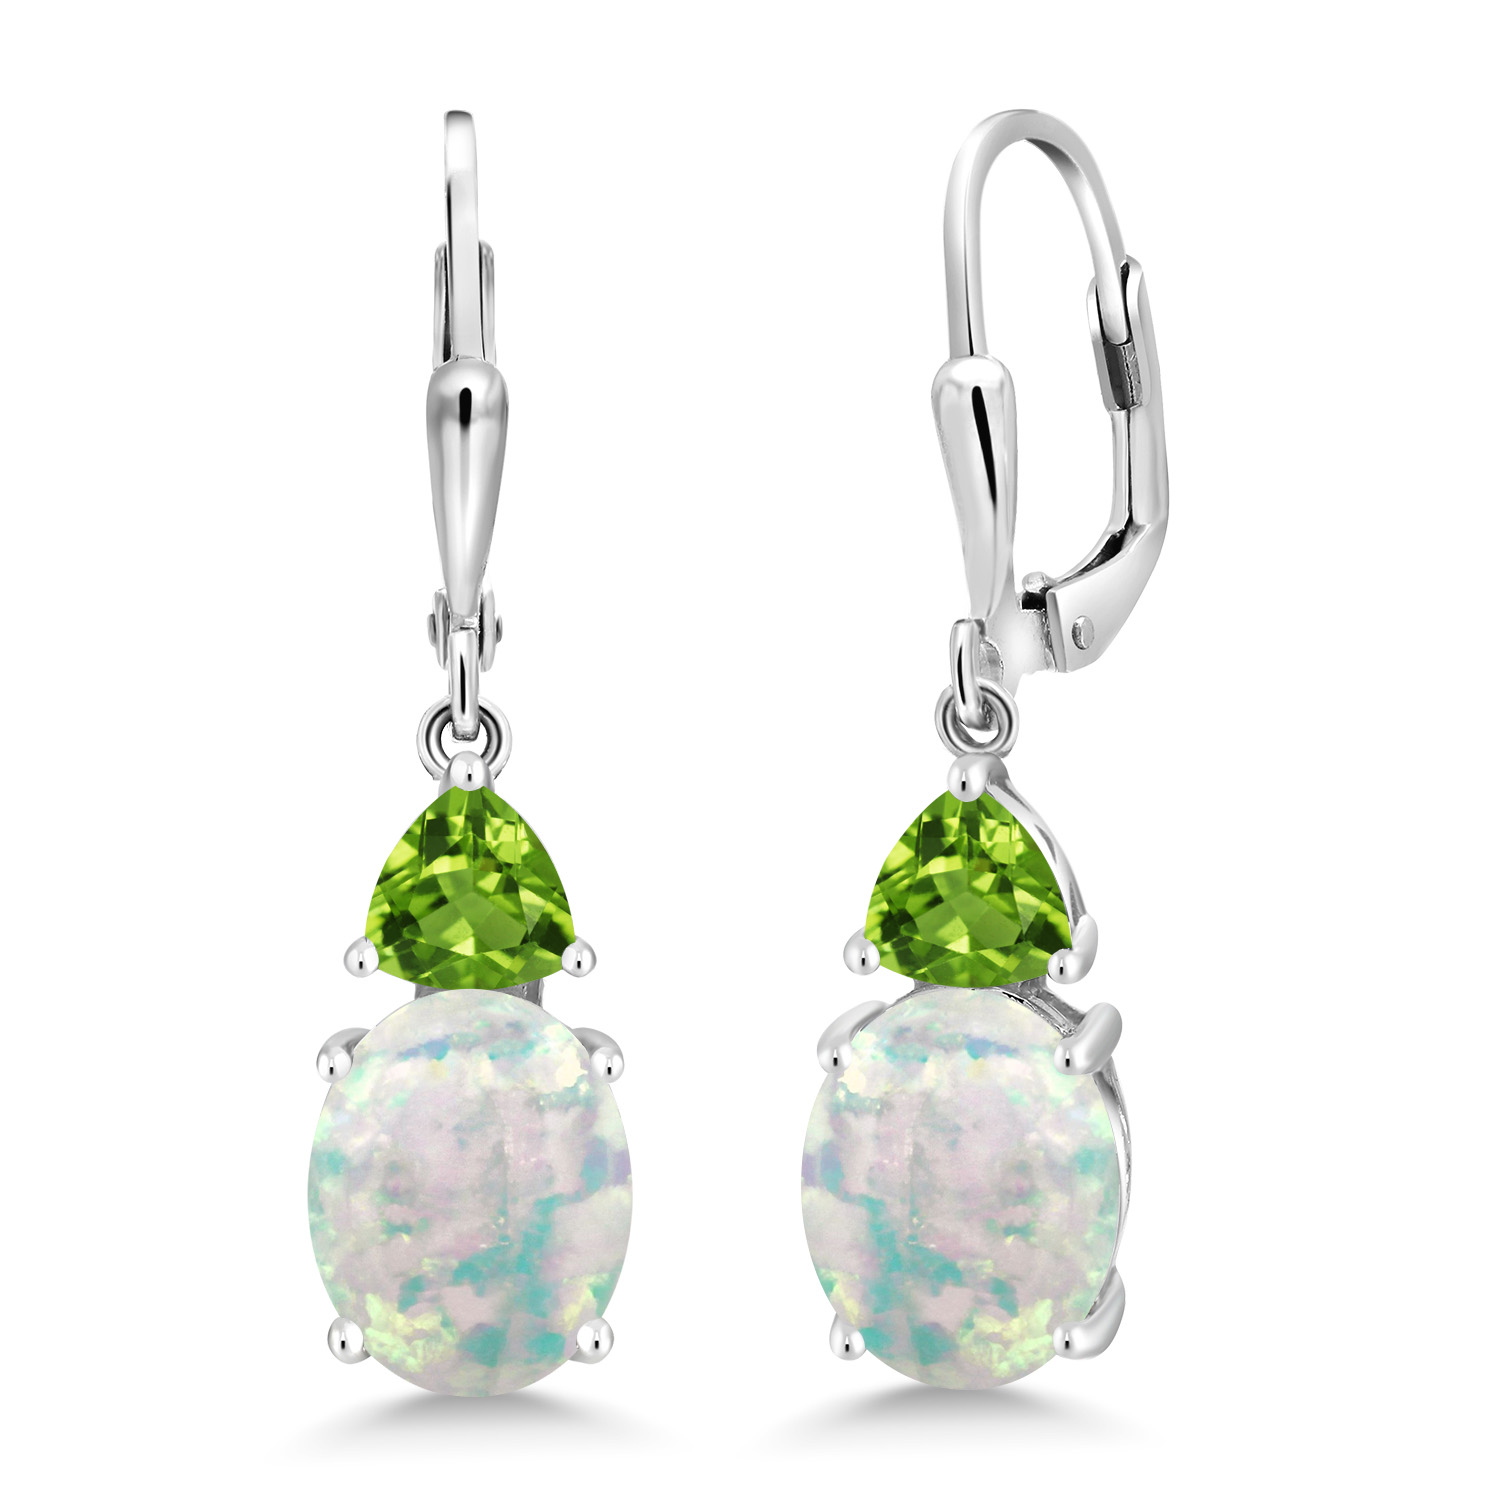 1.26 Ct Oval Cabochon Green Simulated Opal 925 Sterling Silver Earrings